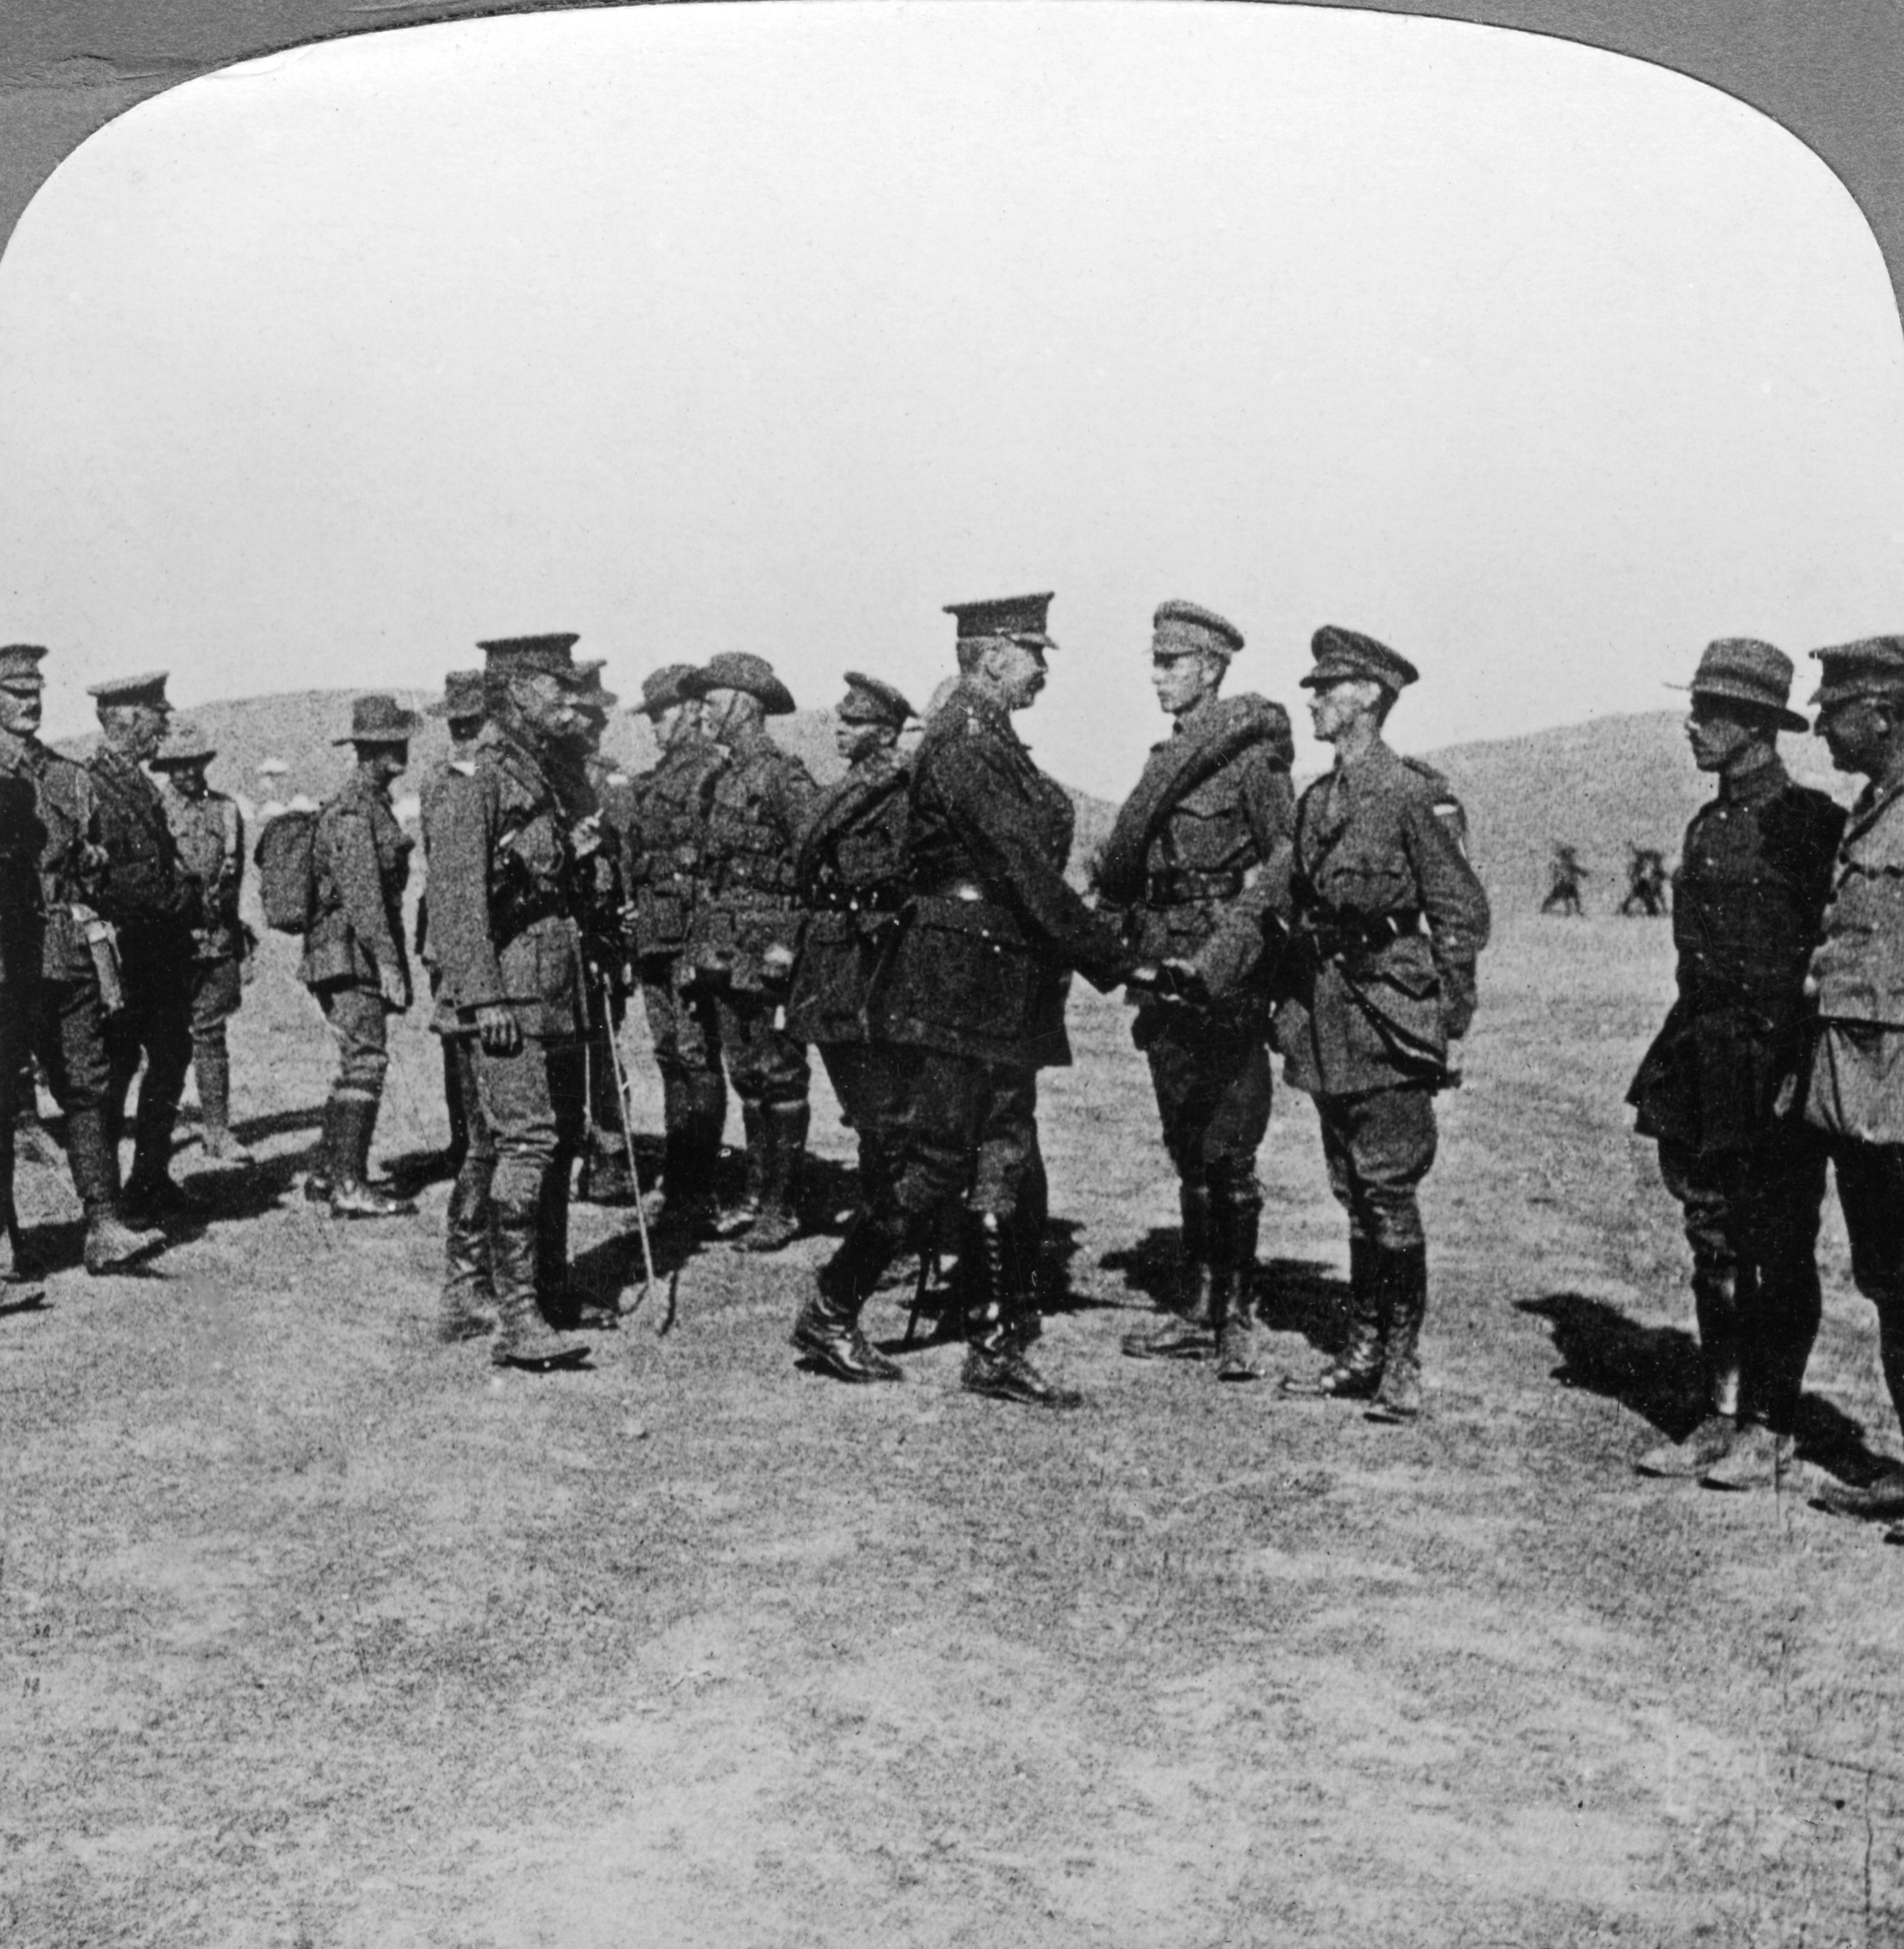 Lord Kitchener praises troops for their assaults at the Dardanelles, World War I, 1915-1916. (Getty Images)